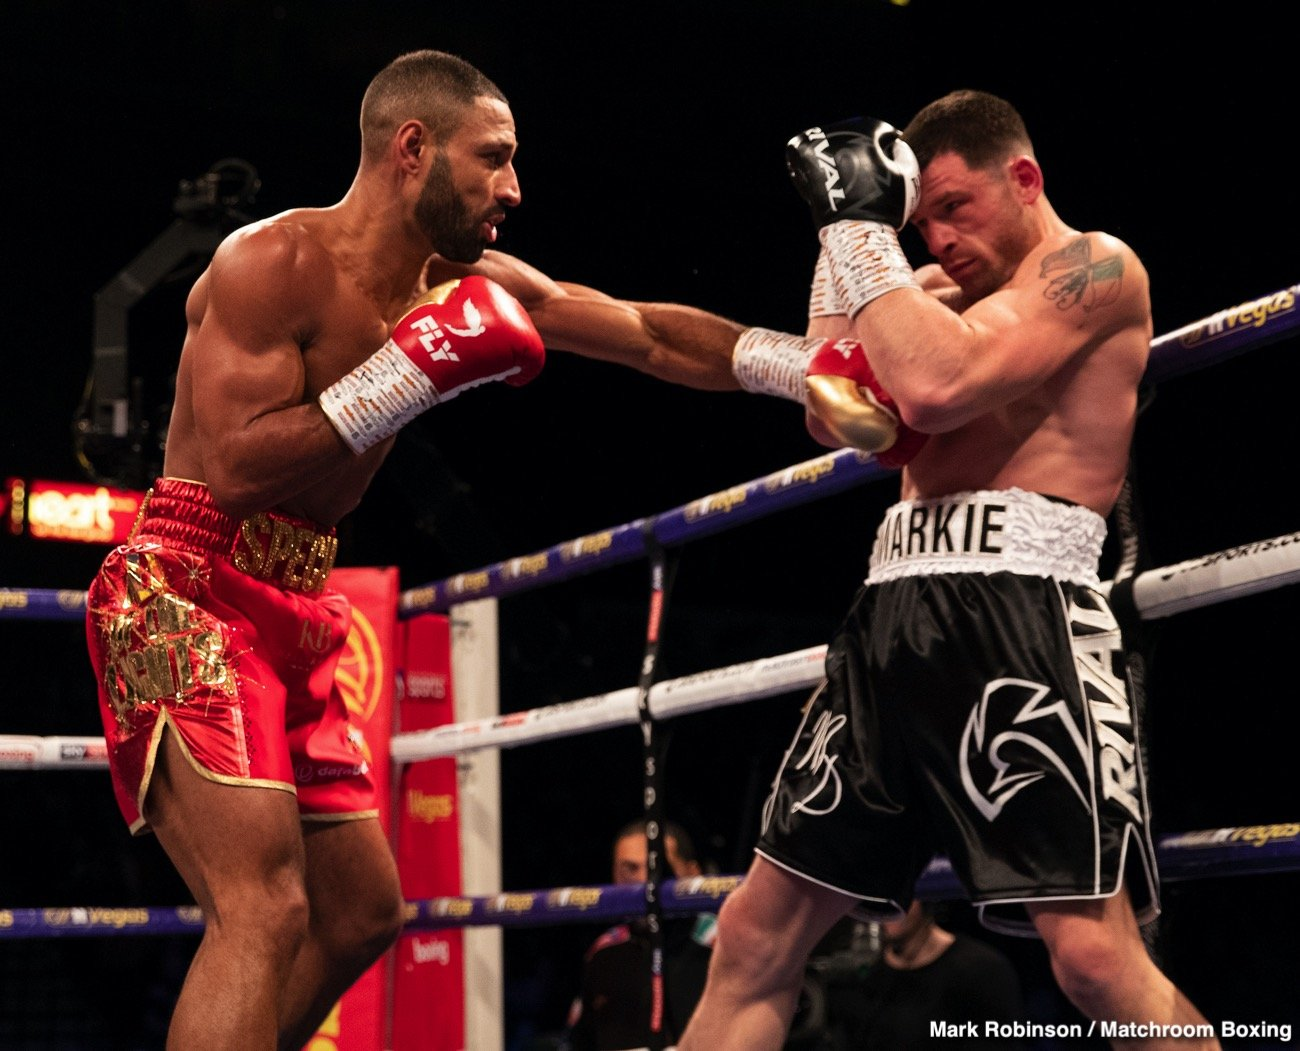 Eddie Hearn, Kell Brook, Liam Smith, Mark DeLuca - Kell Brook (39-2, 27 KOs) came back from a 14 month layoff to conquer Mark DeLuca (24-2, 13 KOs) in a 7th round KO on Saturday night at the Sheffield Arena in Sheffield, England.